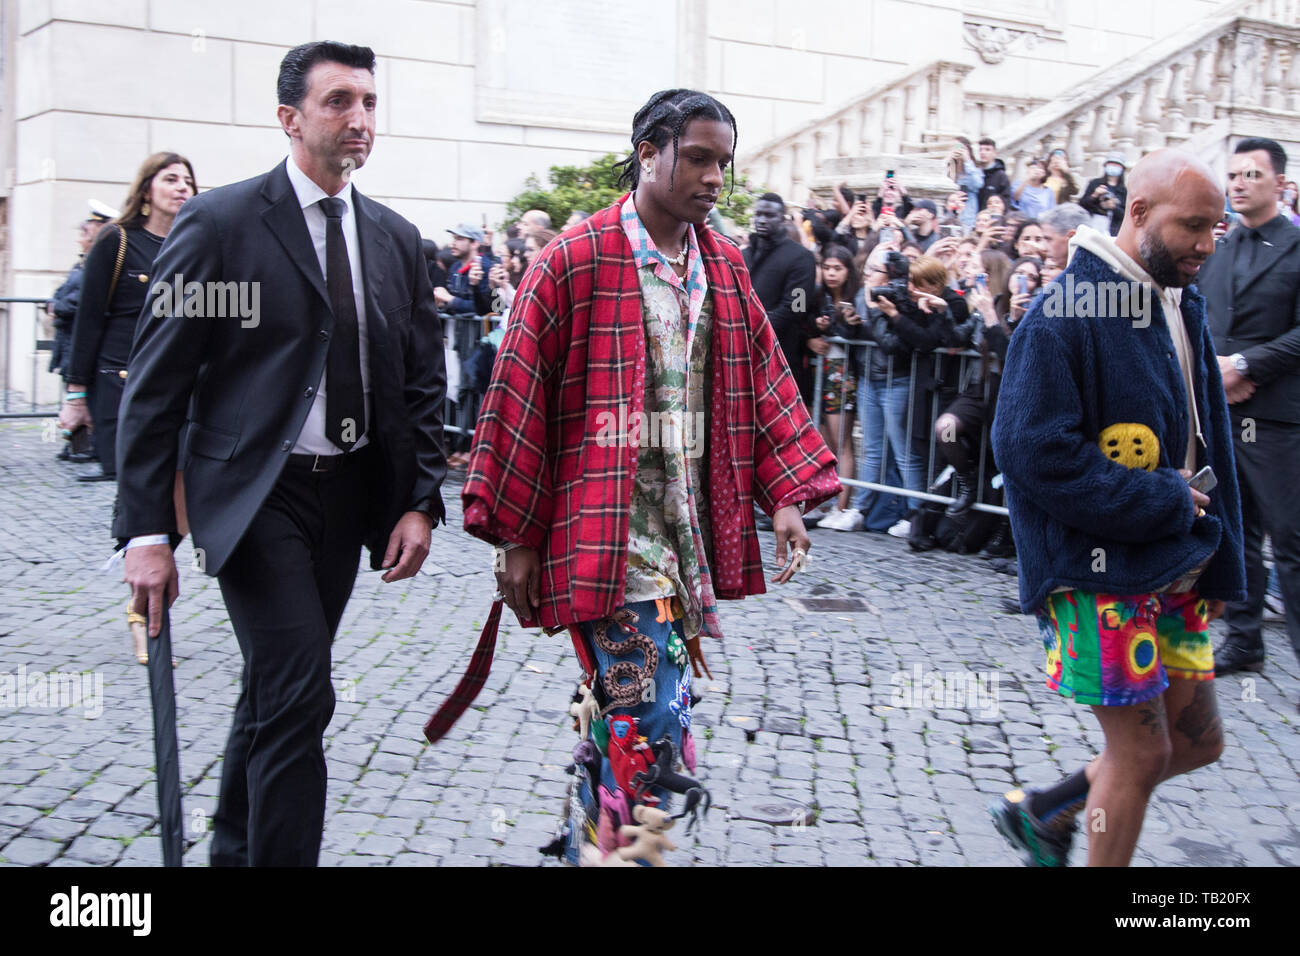 Asap Rocky Stock Photos & Asap Rocky Stock Images - Alamy